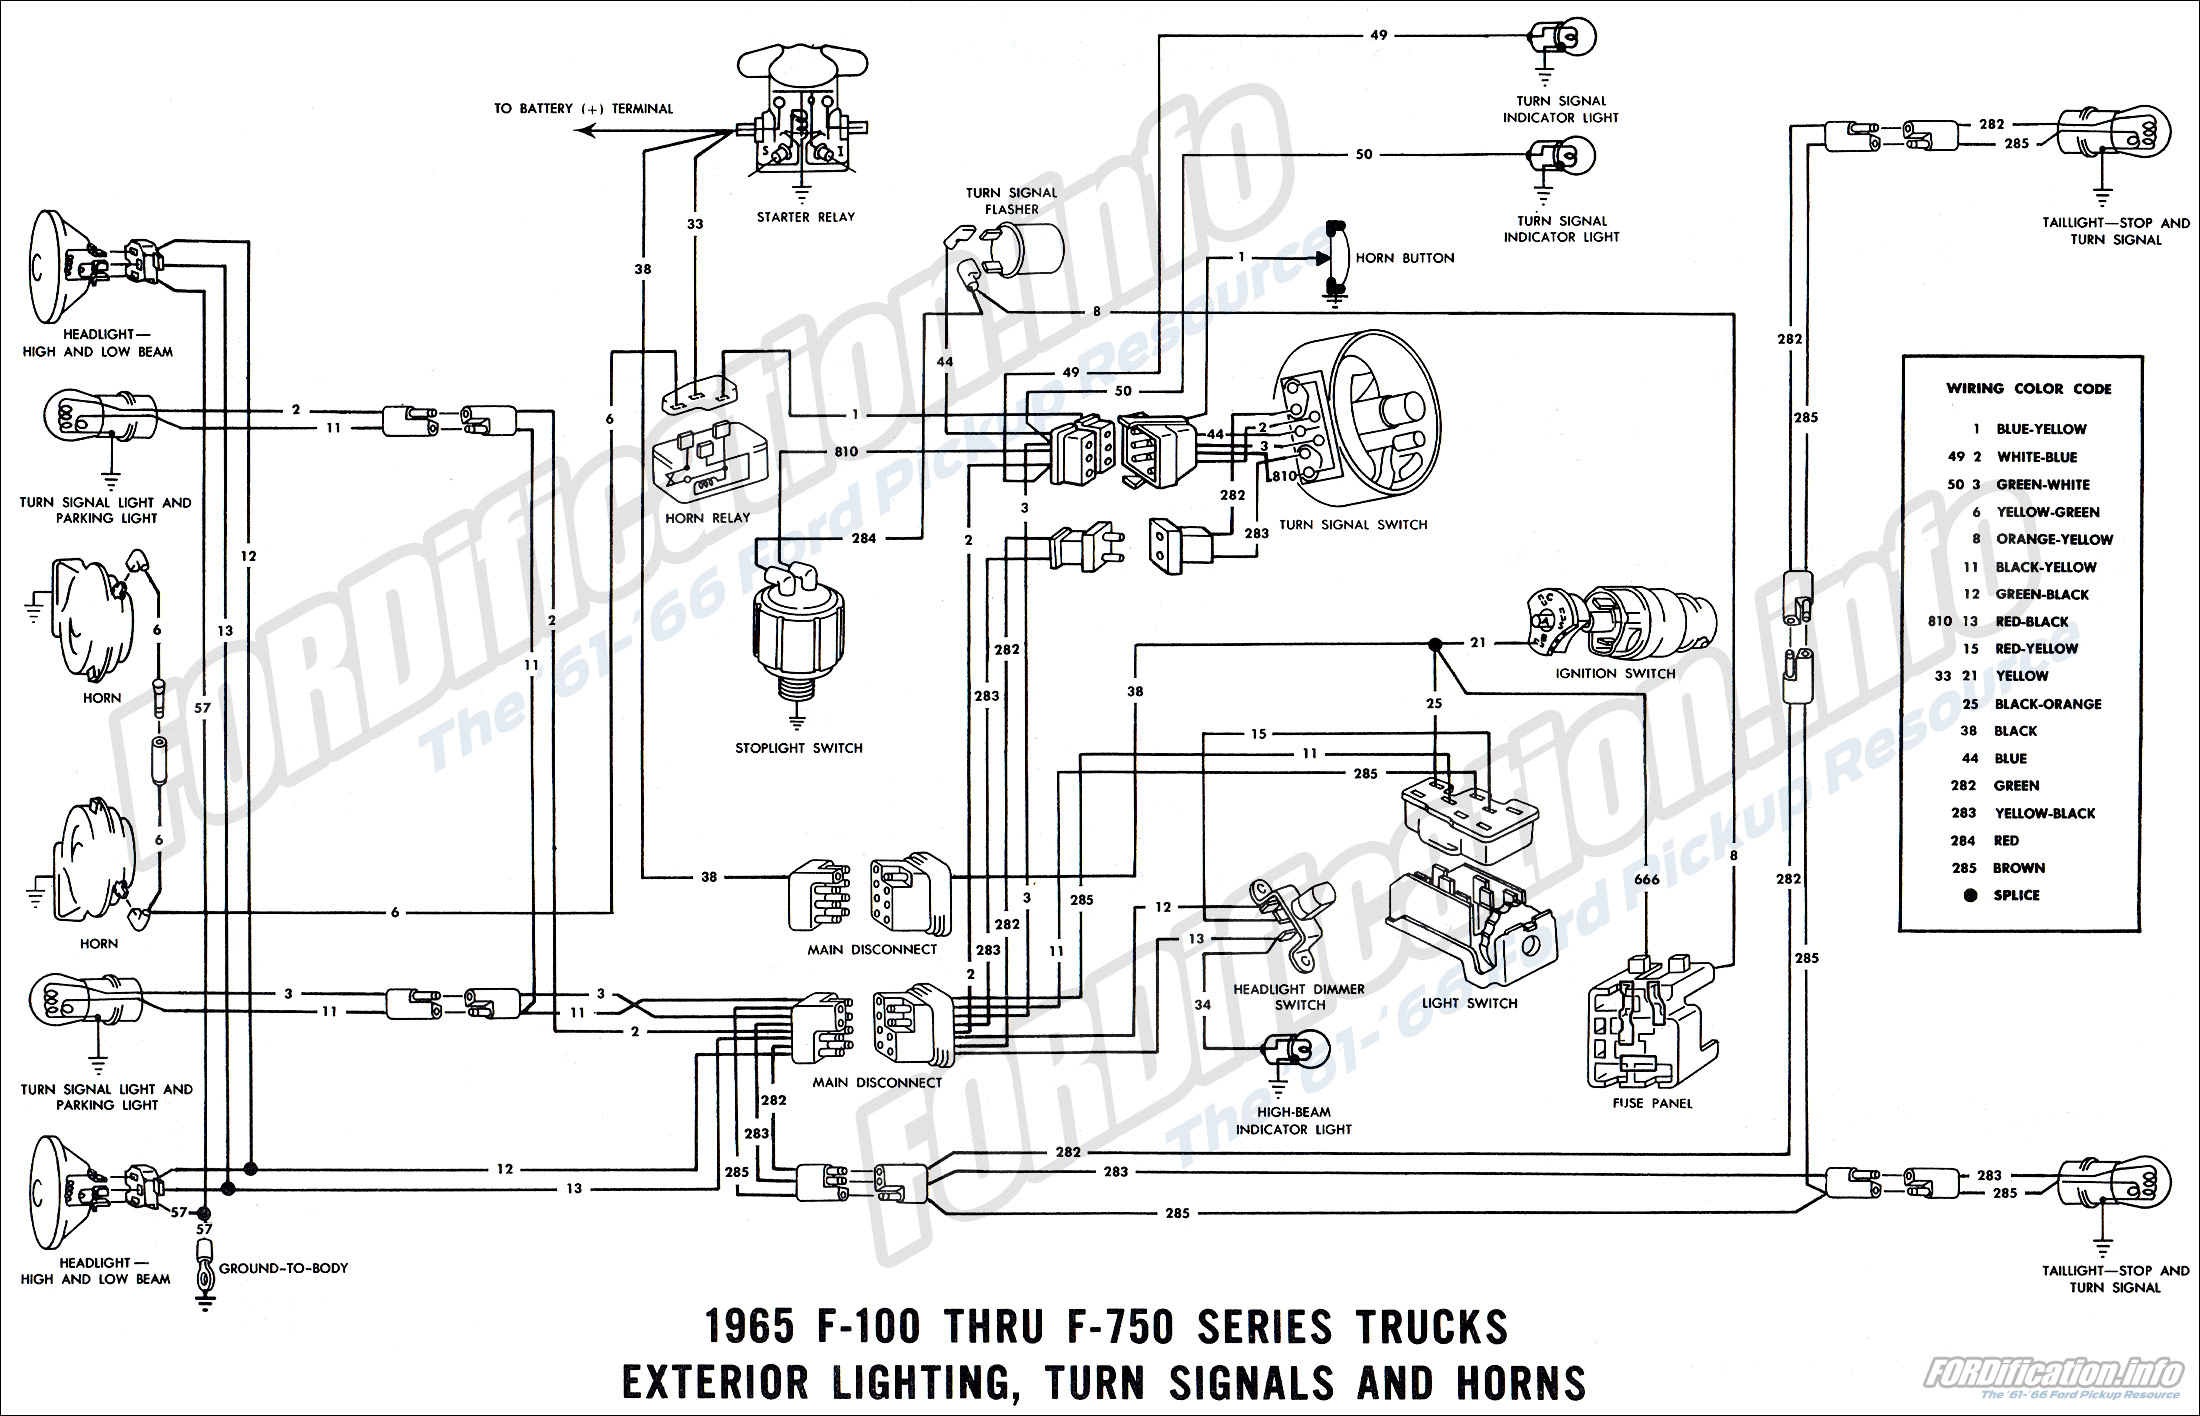 Ka24e Wiring Harness Diagram Free Download Diagrams Wonderful Mechoshade Pictures Best Image Ars Suburban At Sr20det